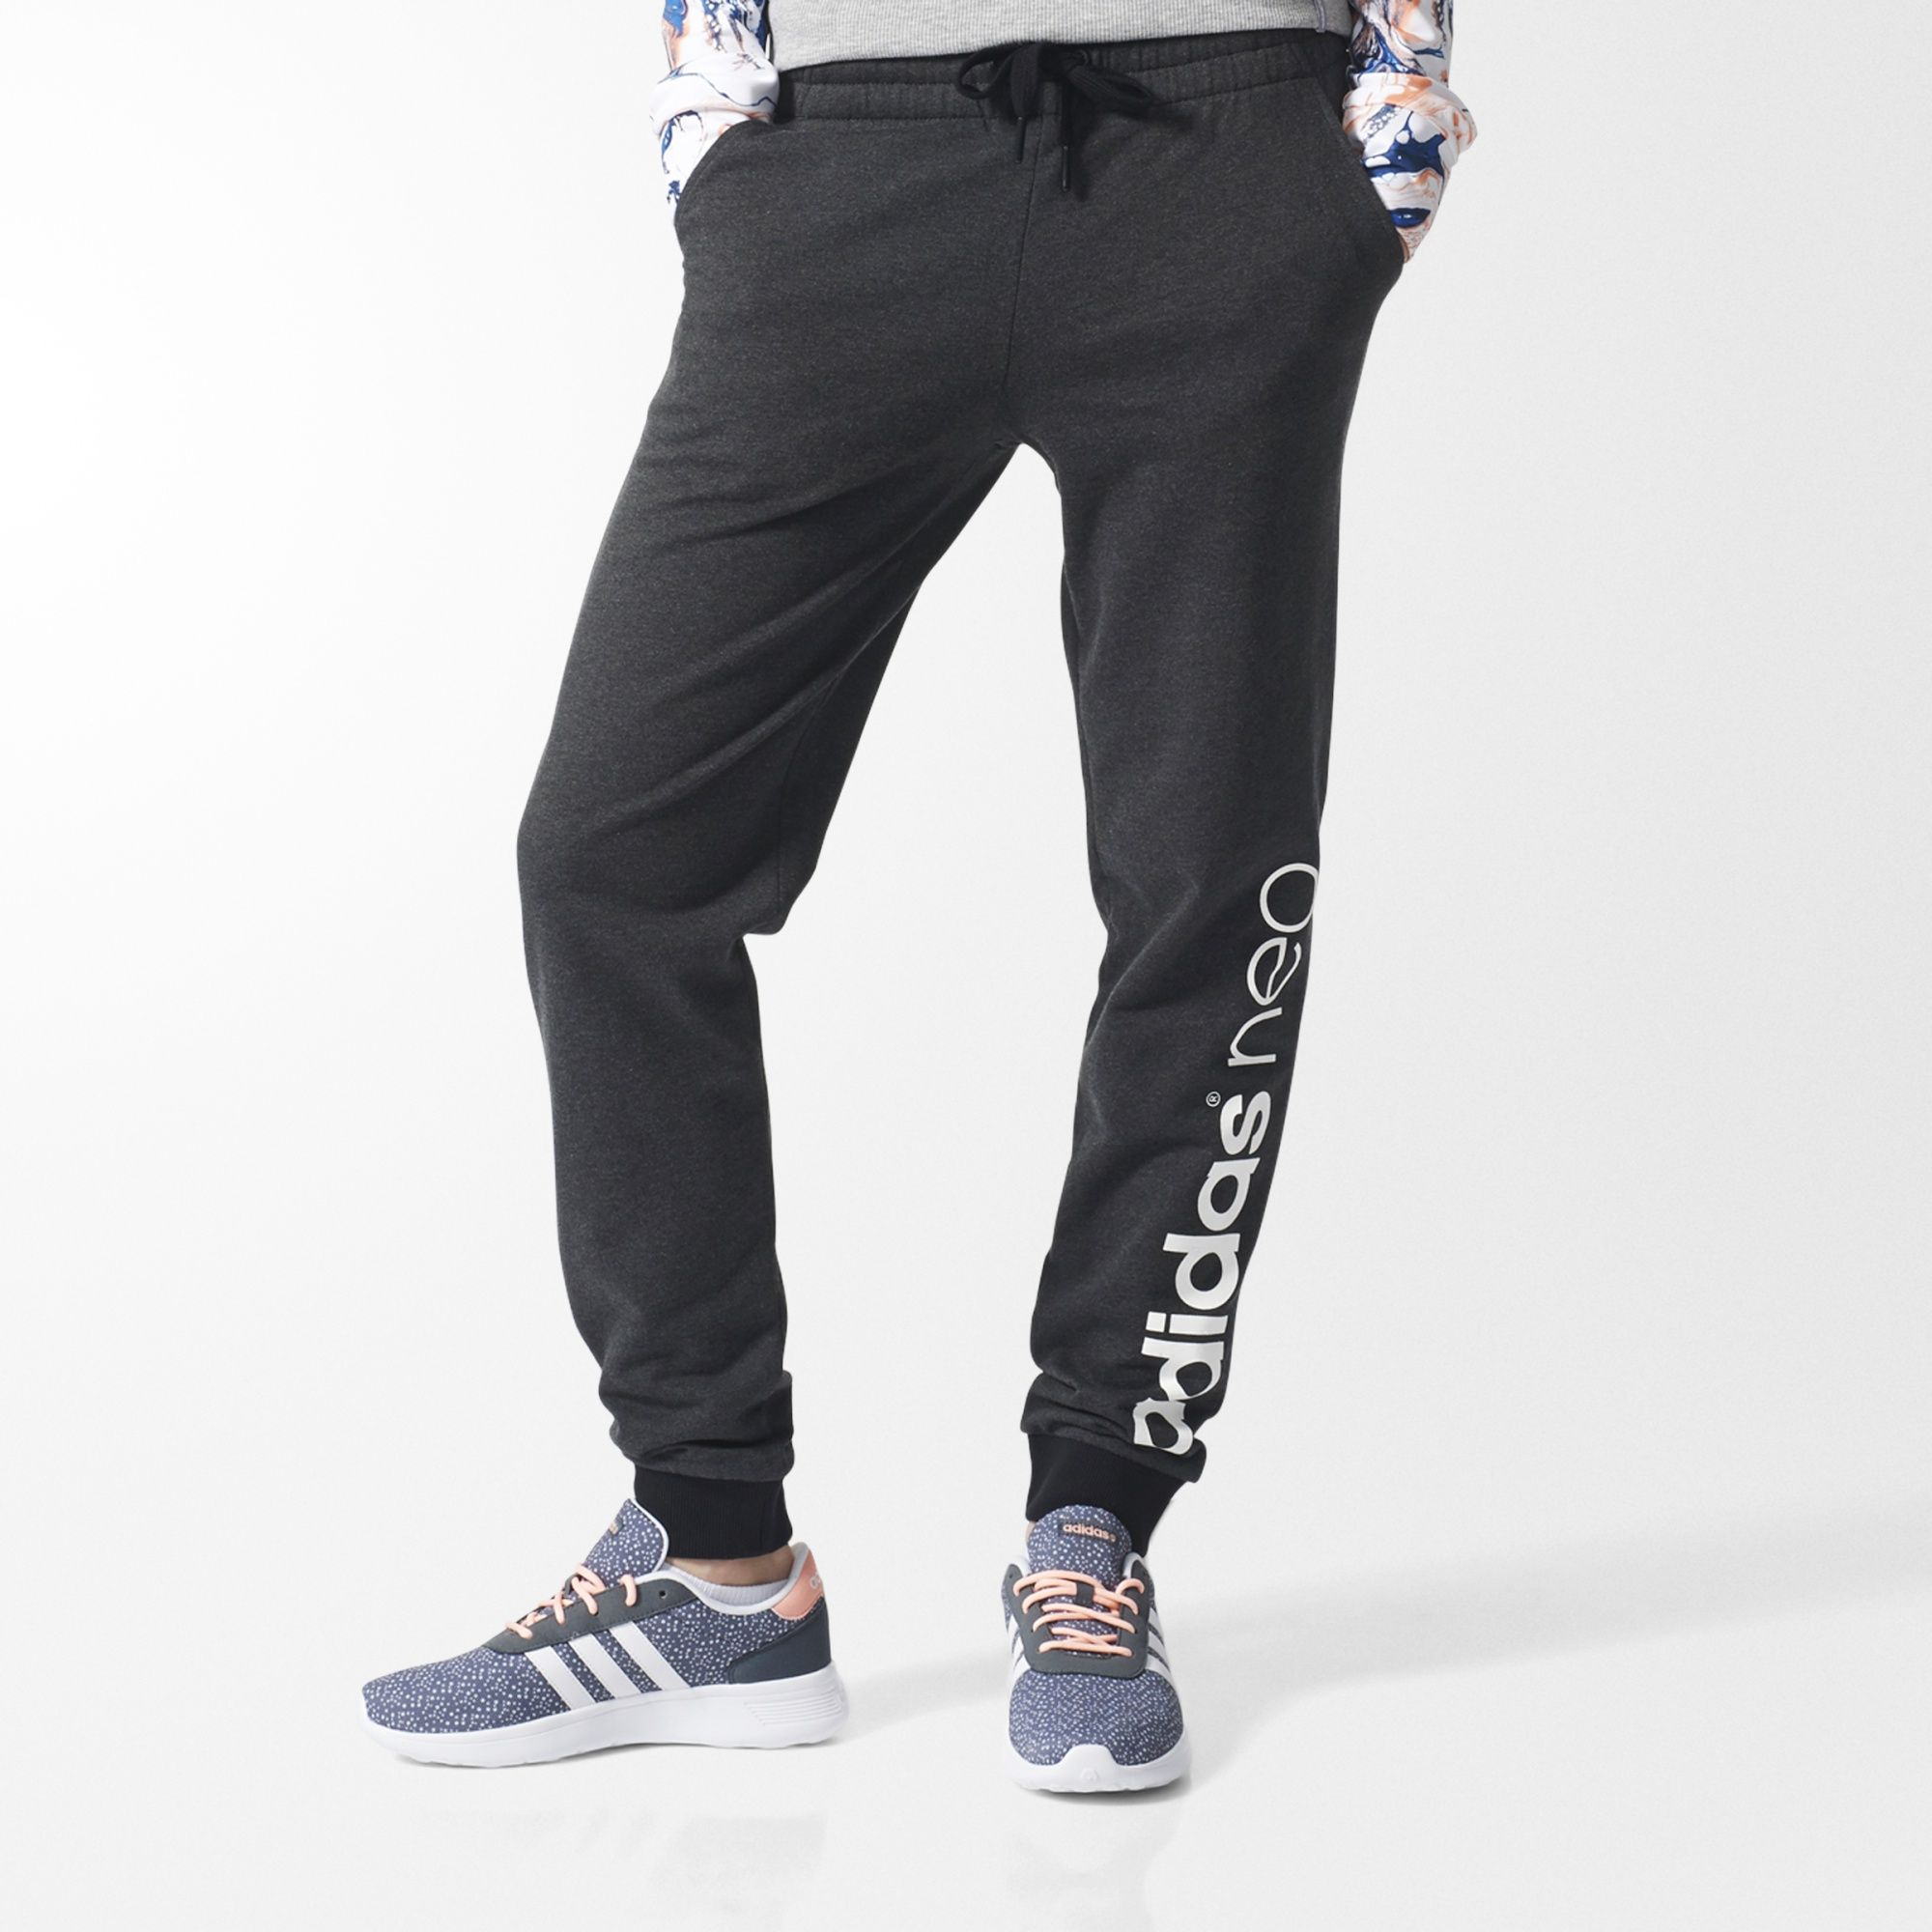 adidas Neo Men/'s Track Pants Grey